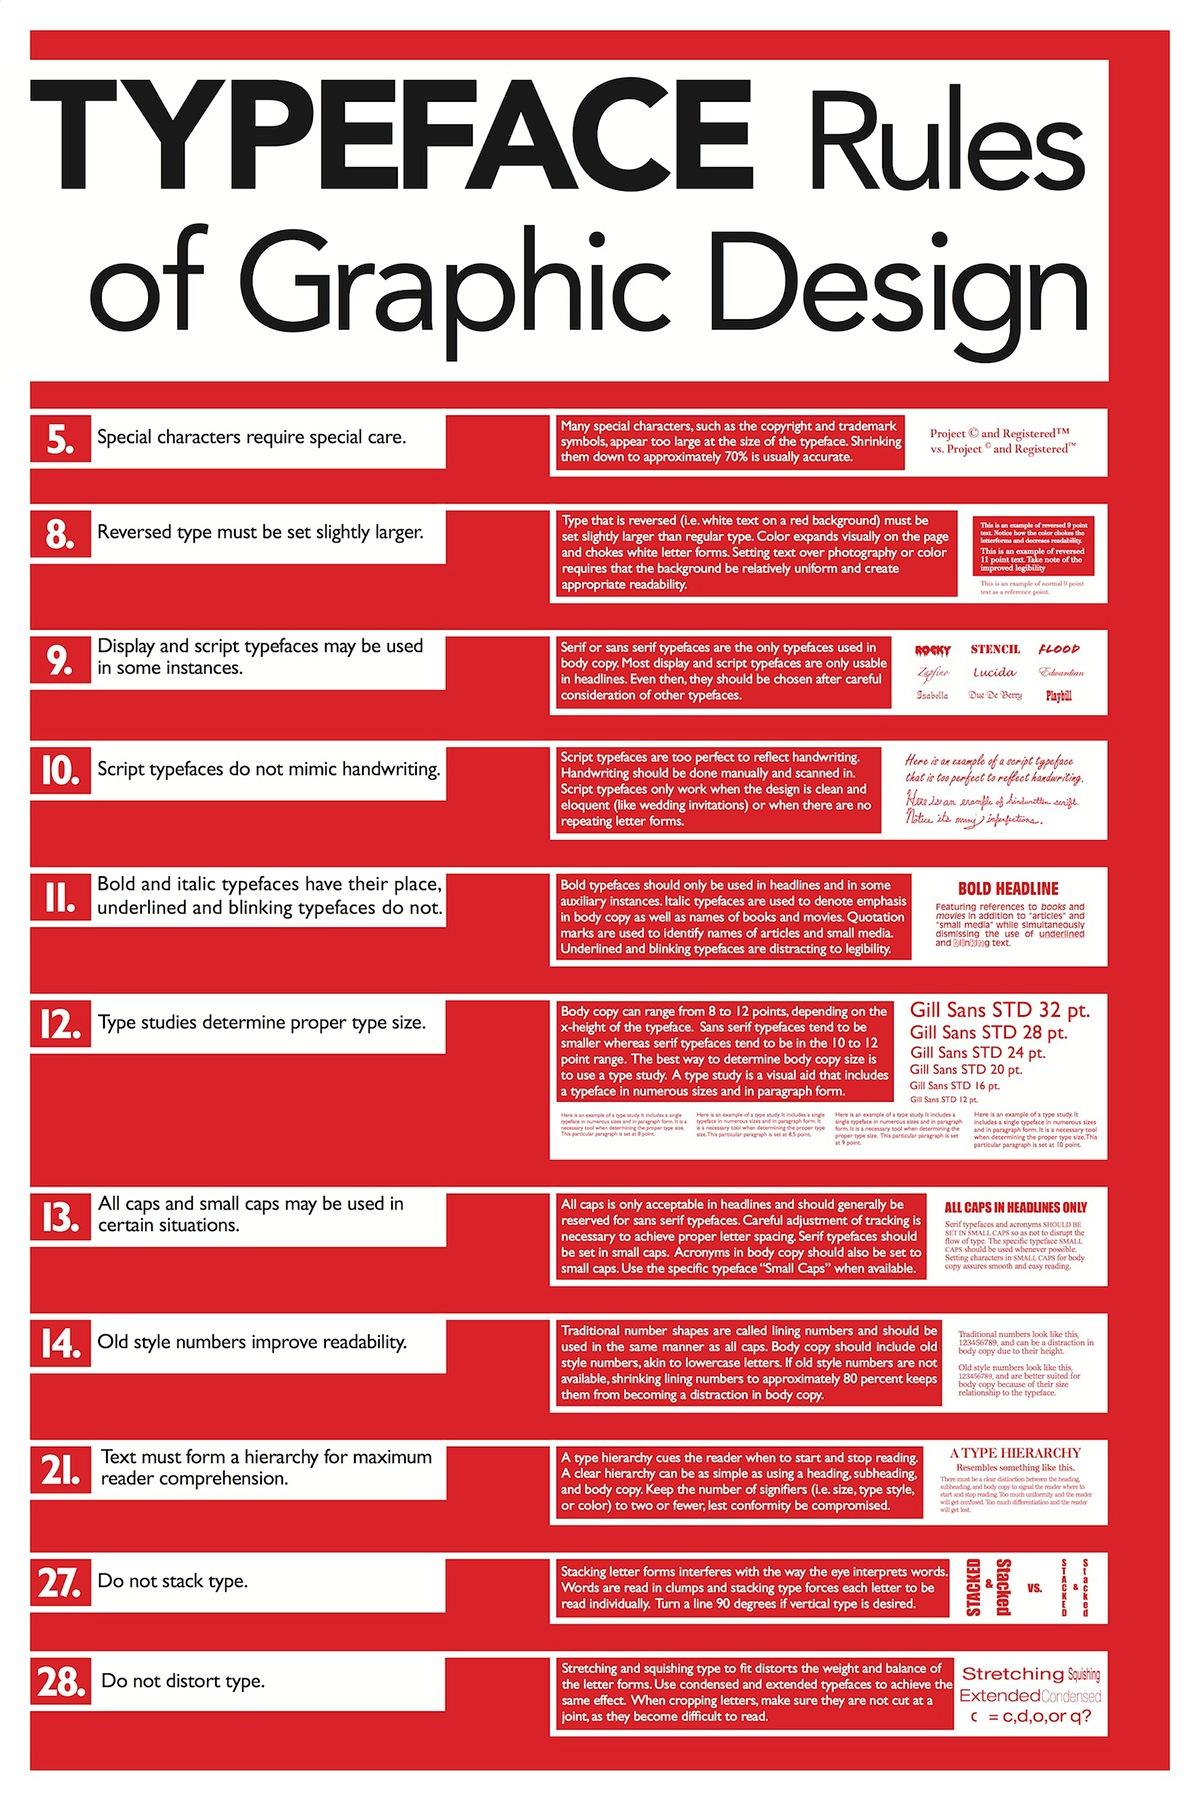 Poster design rules -  Rule And Developed An Example For Each One If You Re Interested In Purchasing The Series As Pdfs E Mail Me At Jemoran Alumni Nmu Edu Or Message Me On